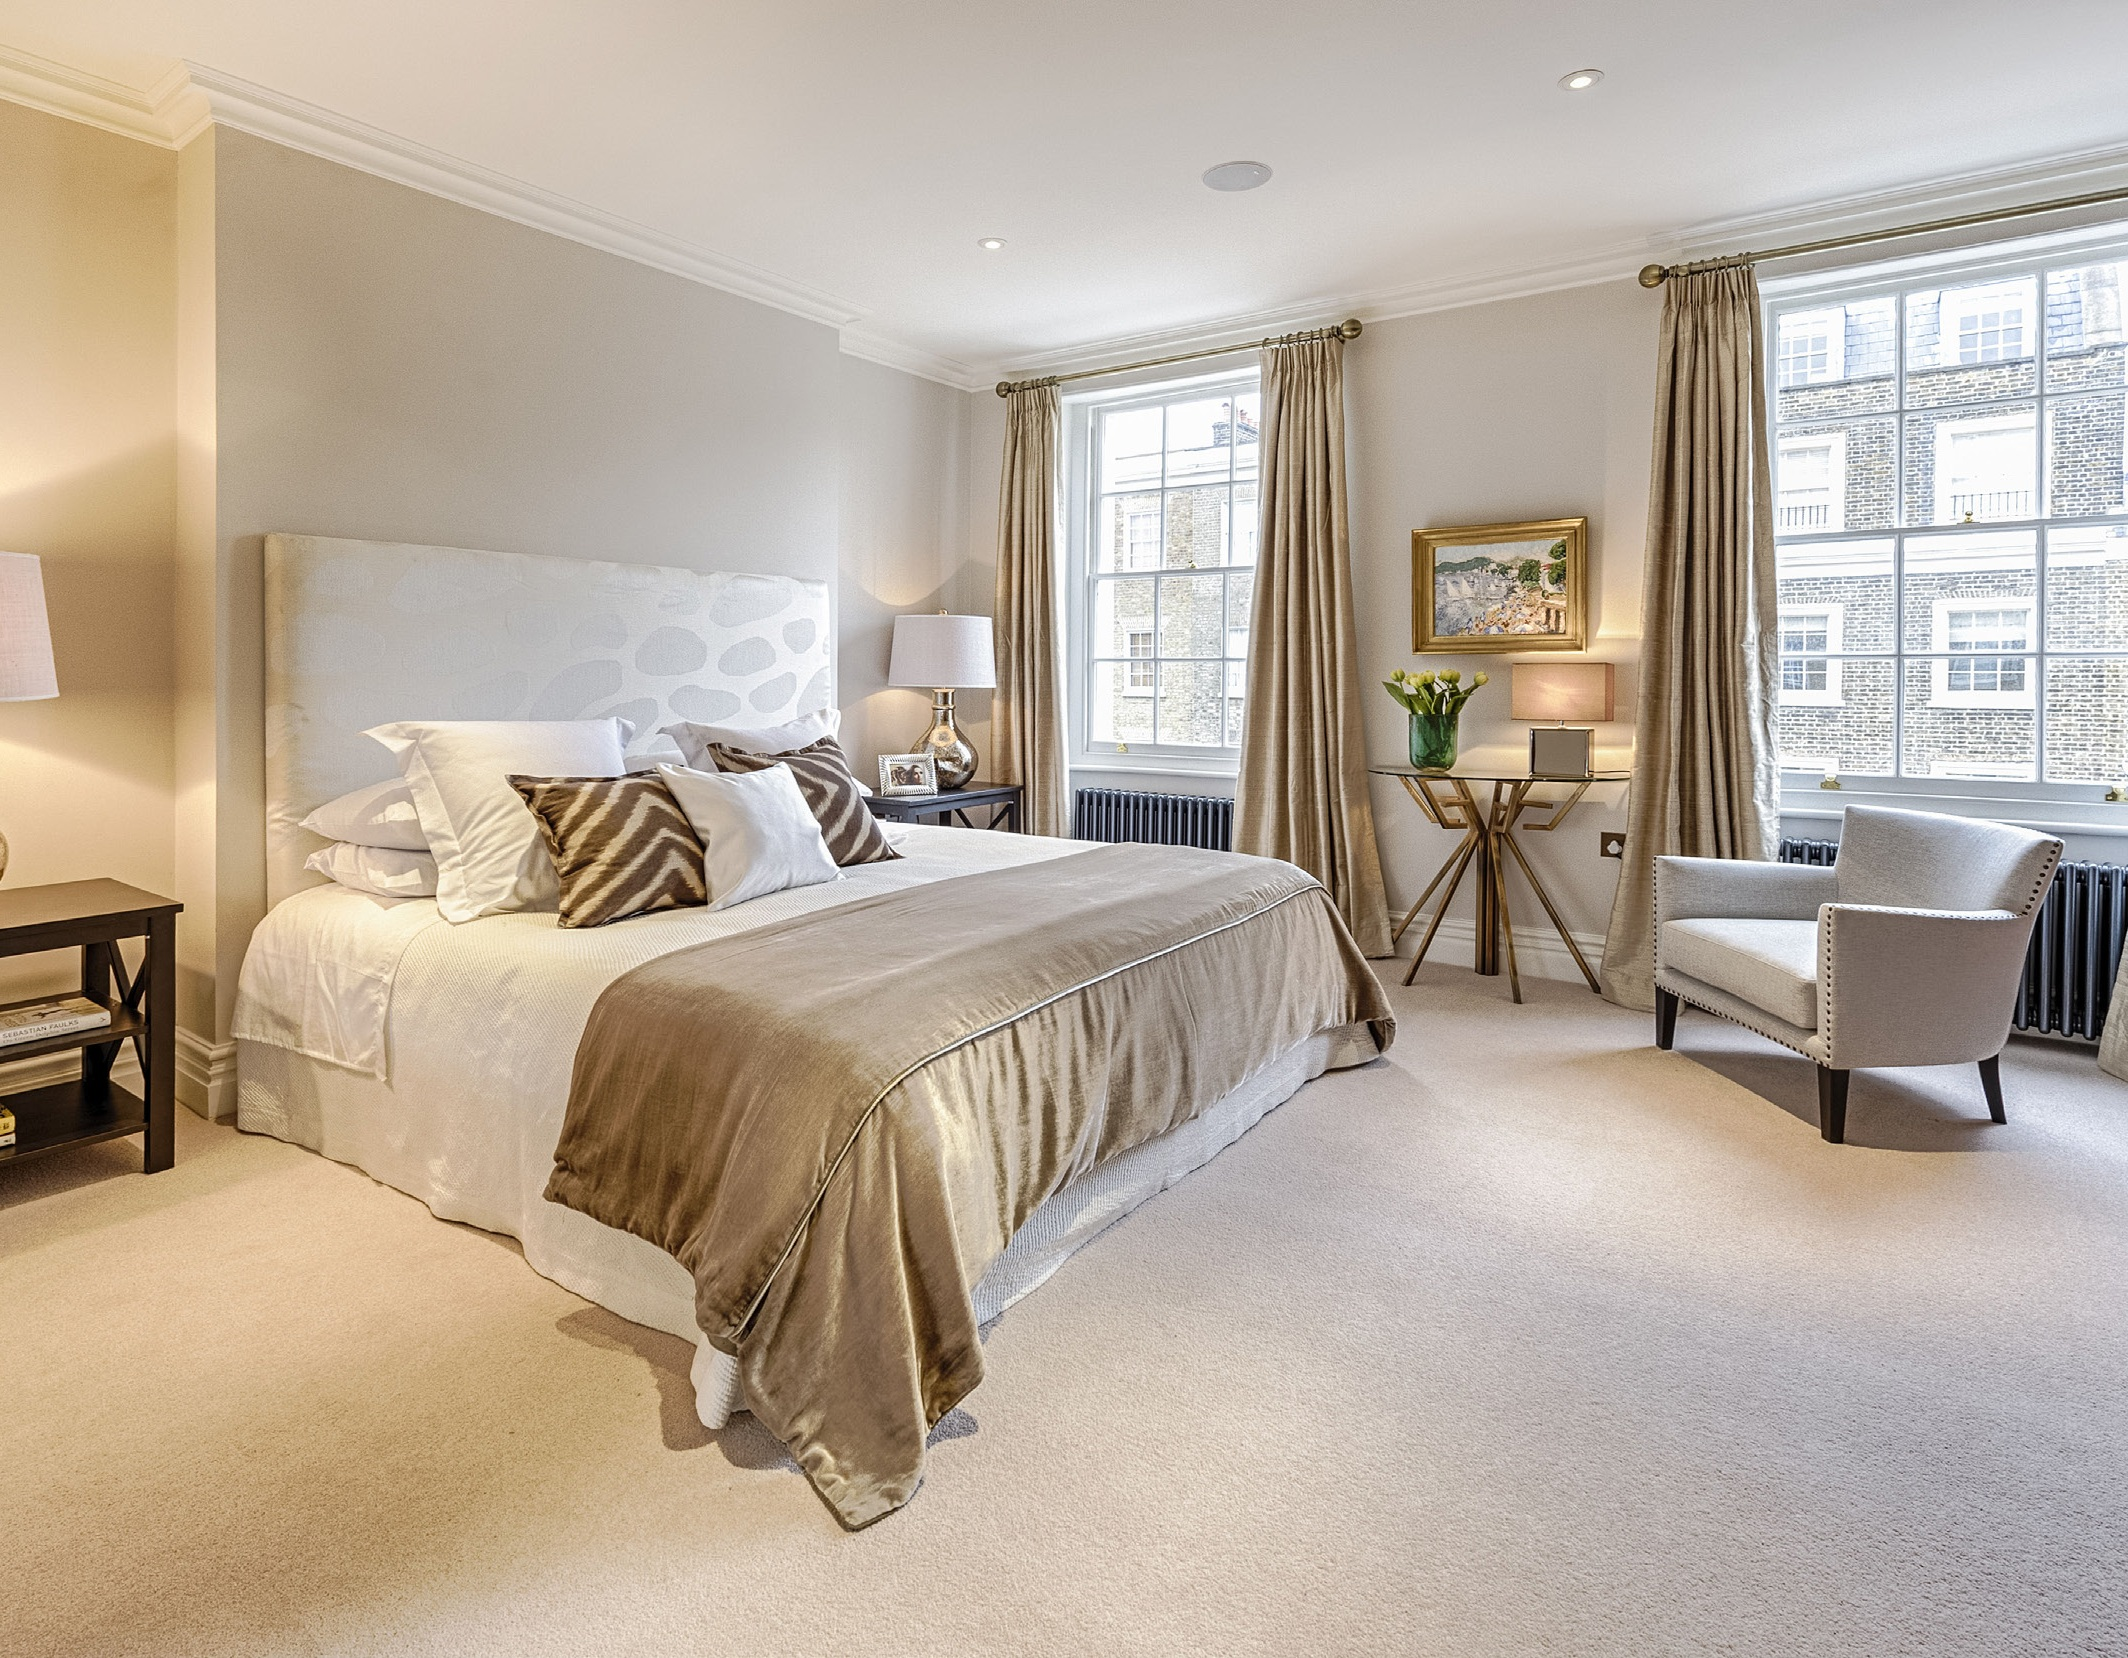 Eaton terrace belgravia clifton london Master bedroom with terrace